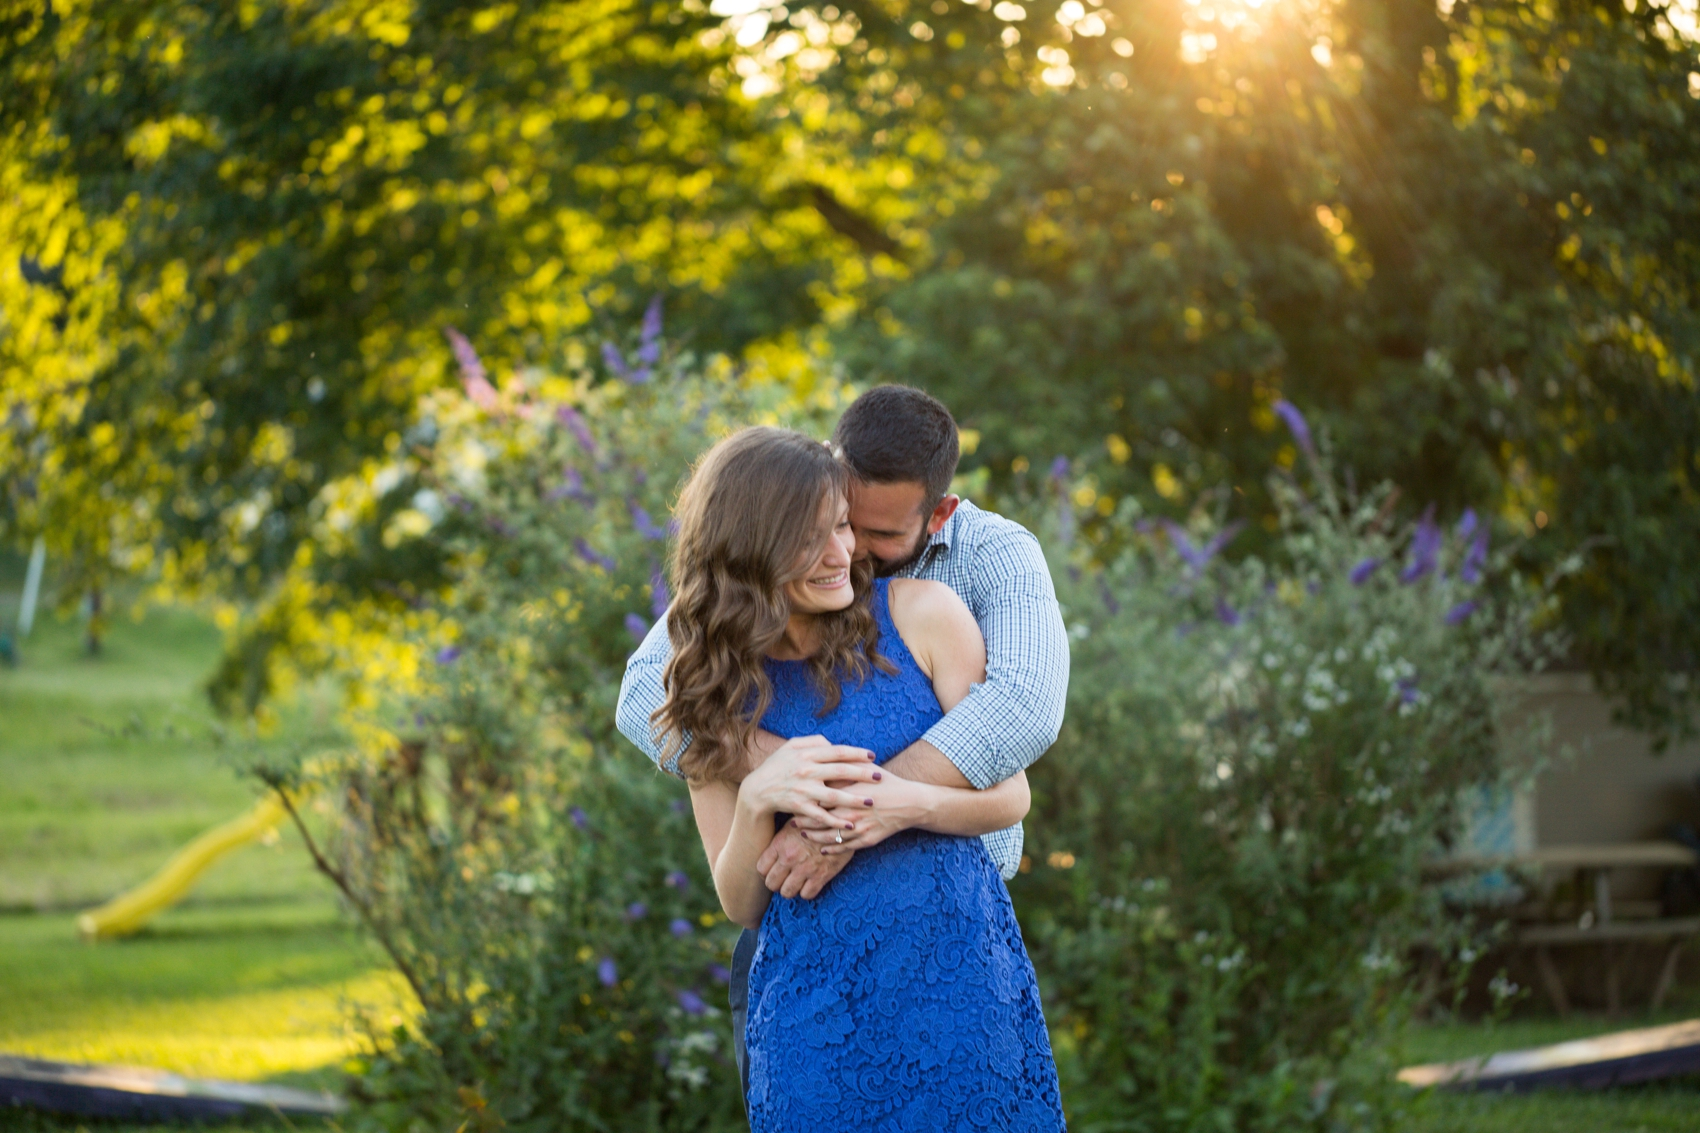 Seven-Oaks-Lavender-Farm-Engagement-Session-2019-0321.jpg